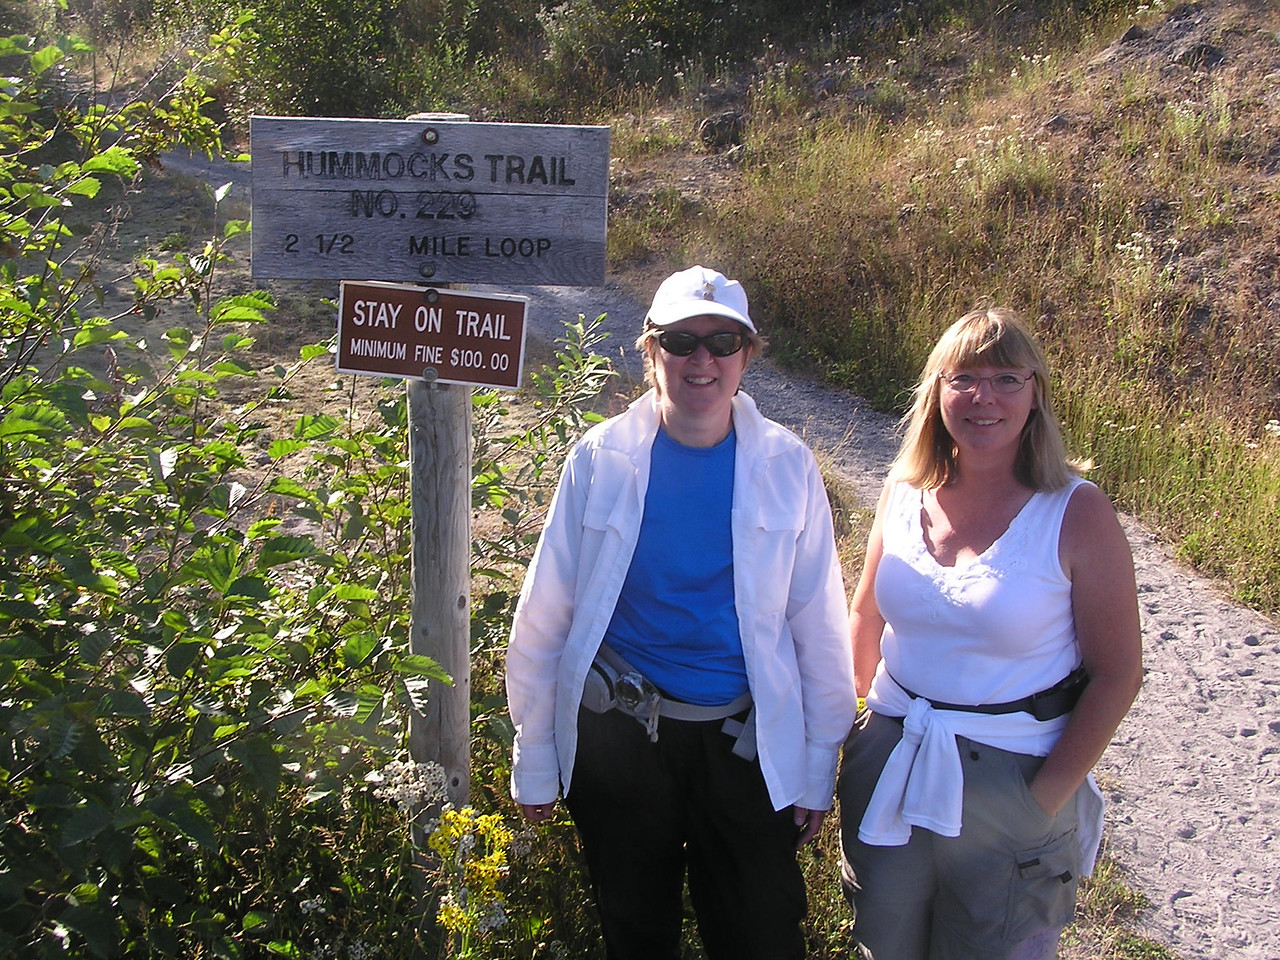 At the start of the Hummocks Trail, which is back down the highway towards I-5 from the Johnston Observatory.  The Observatory is on a ridge, the Hummocks Trail is in the valley near the river.